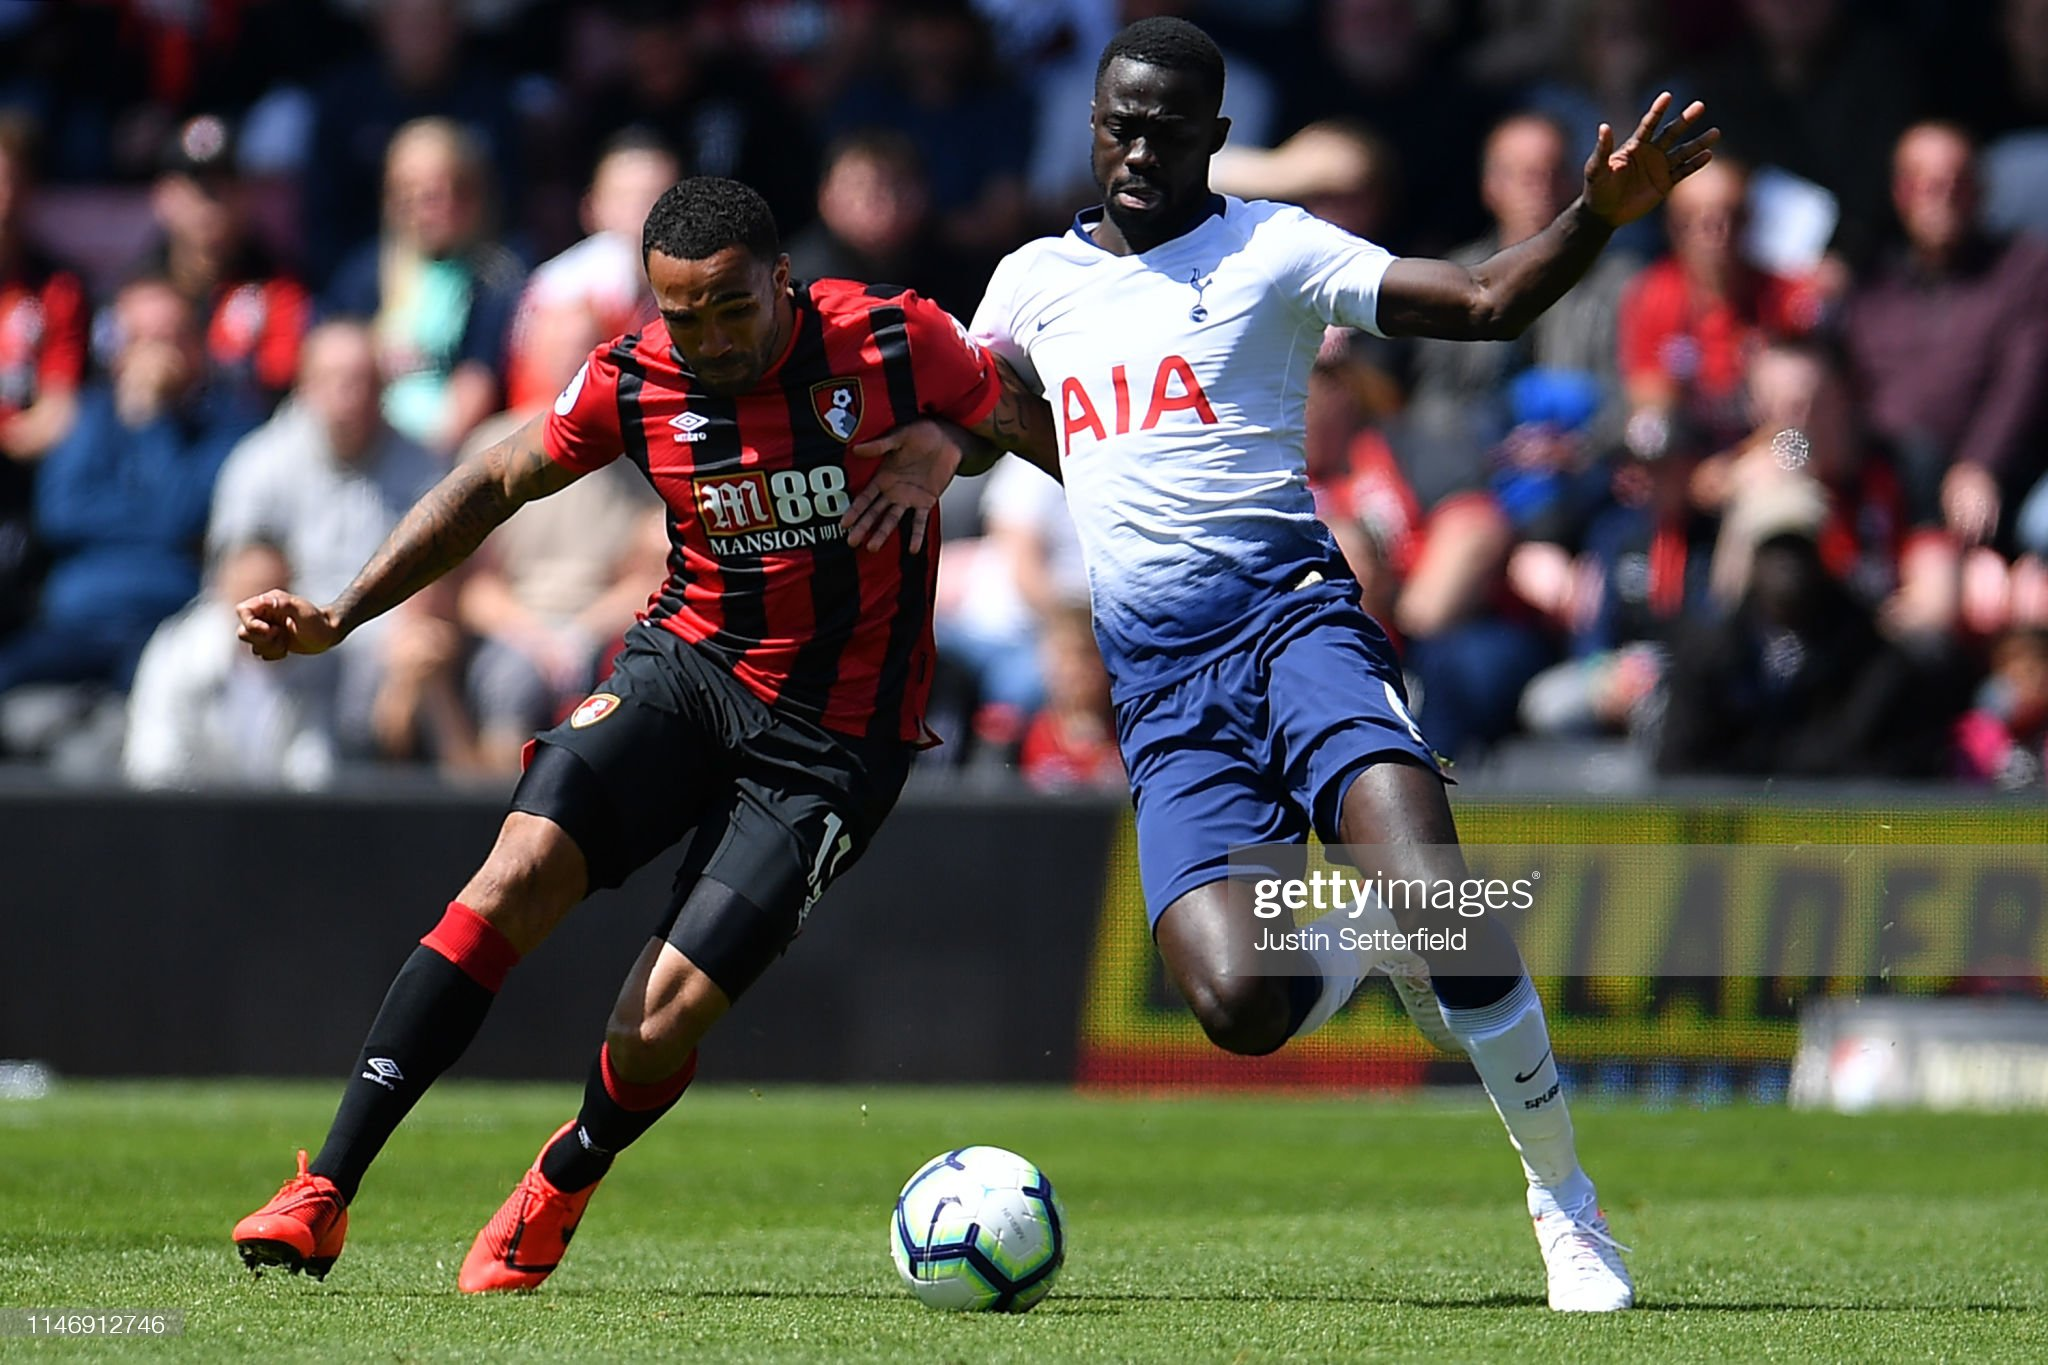 Tottenham v Bournemouth preview, prediction and odds